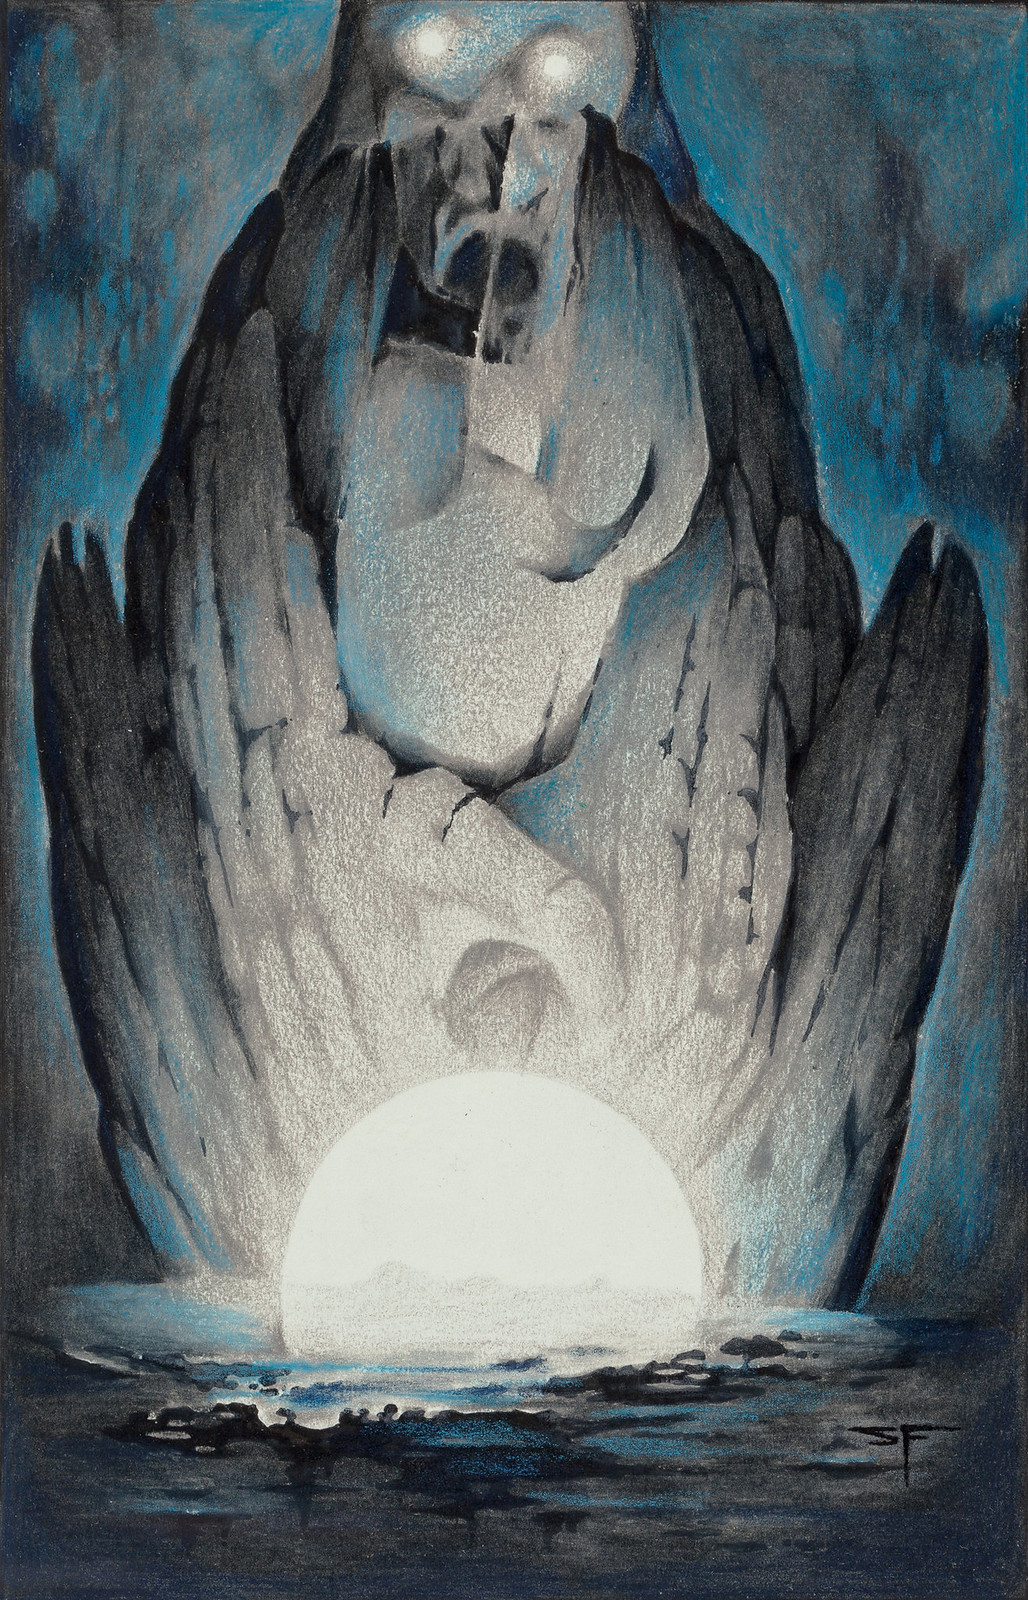 Stephen Fabian - The Dream of X - The Light, 1977